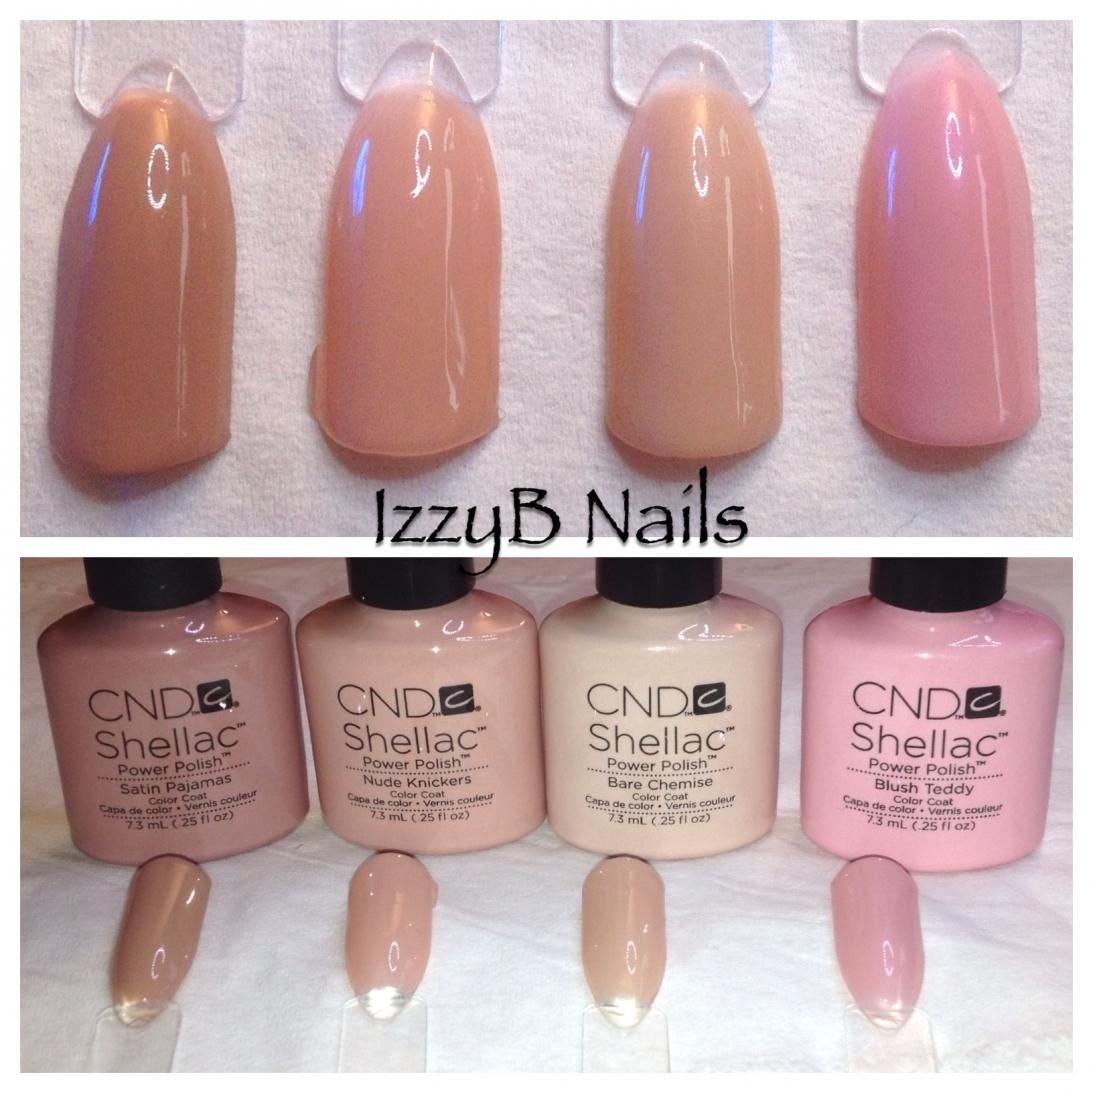 Cnd Shellac Intimates Collection Nail Colorscnd